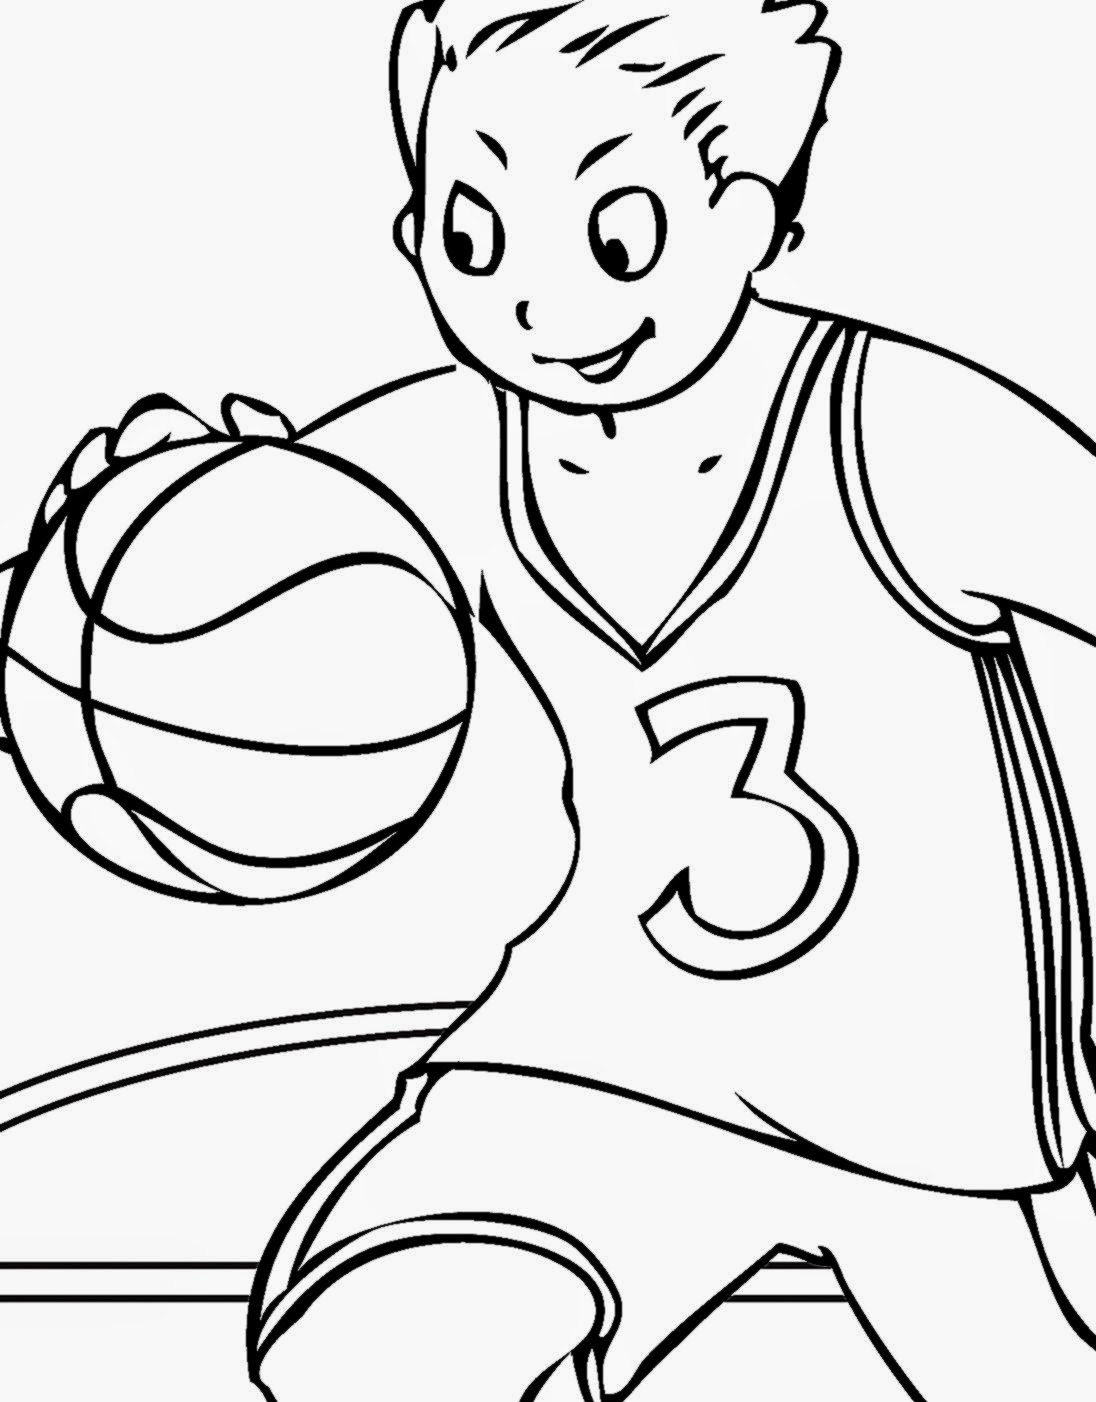 Basketball coloring sheet free coloring sheet for Free basketball coloring pages